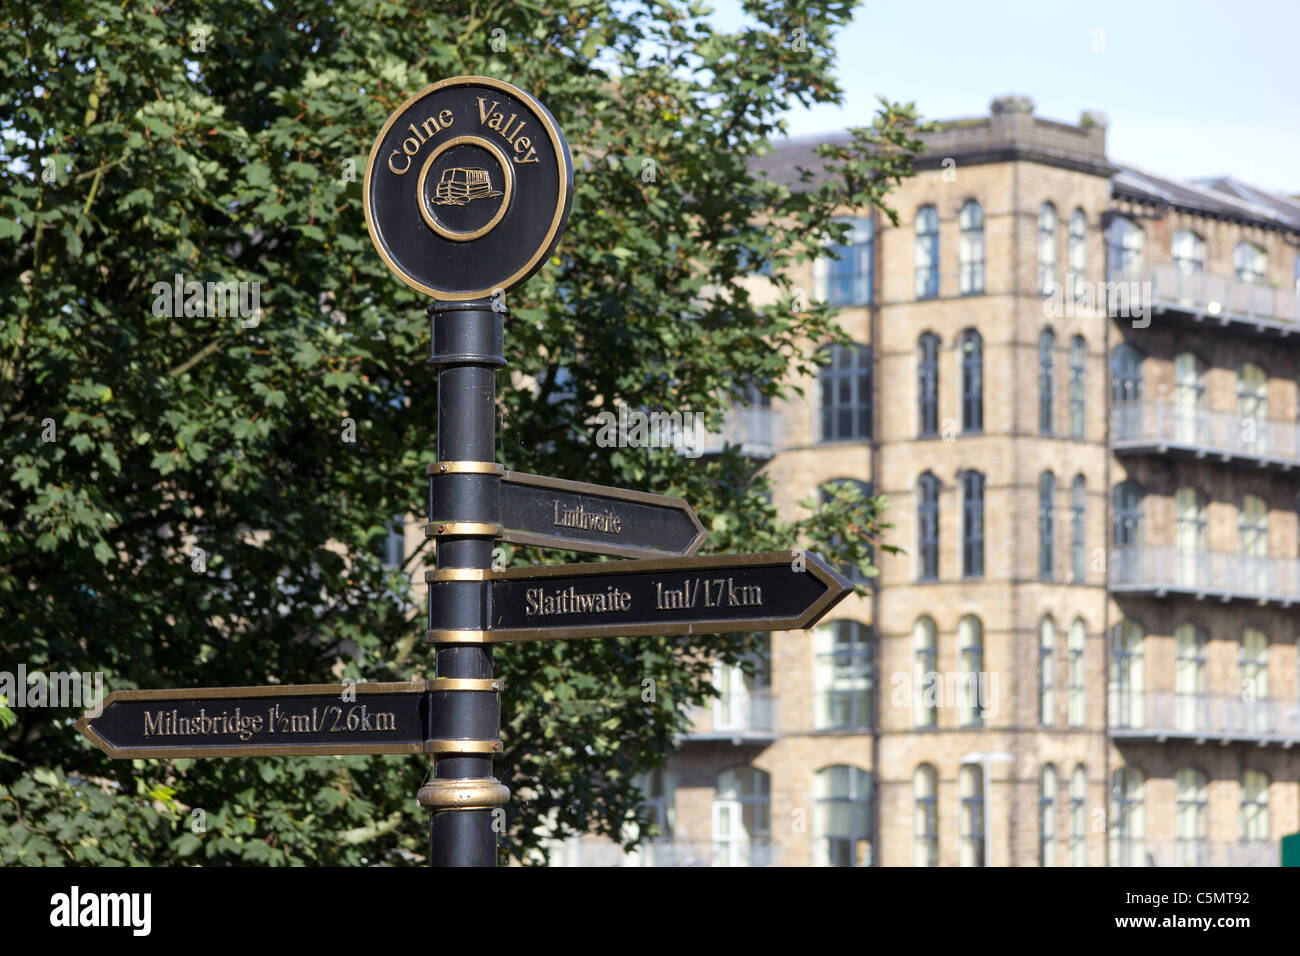 A signpost in the Colne Valley on the Huddersfield Narrow Canal; Titanic Mill Linthwaite defocussed in the background - Stock Image